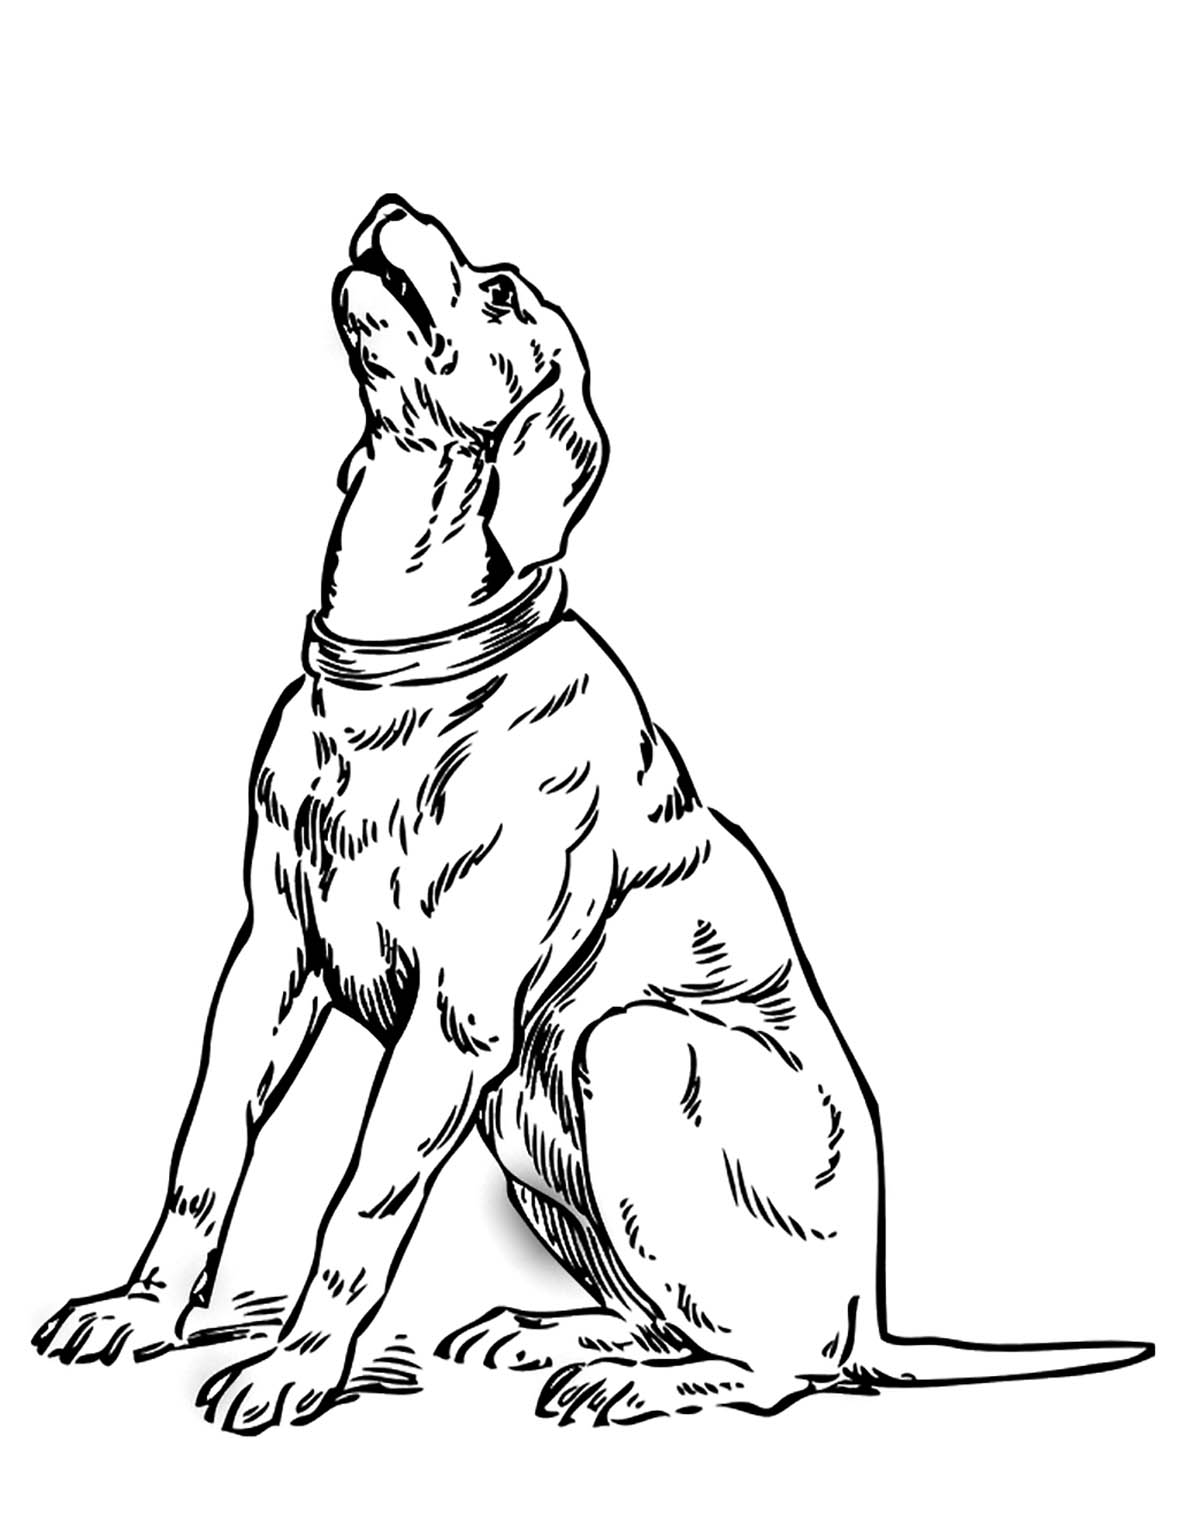 dog color page employ dog coloring pages for your childrens creative time color page dog